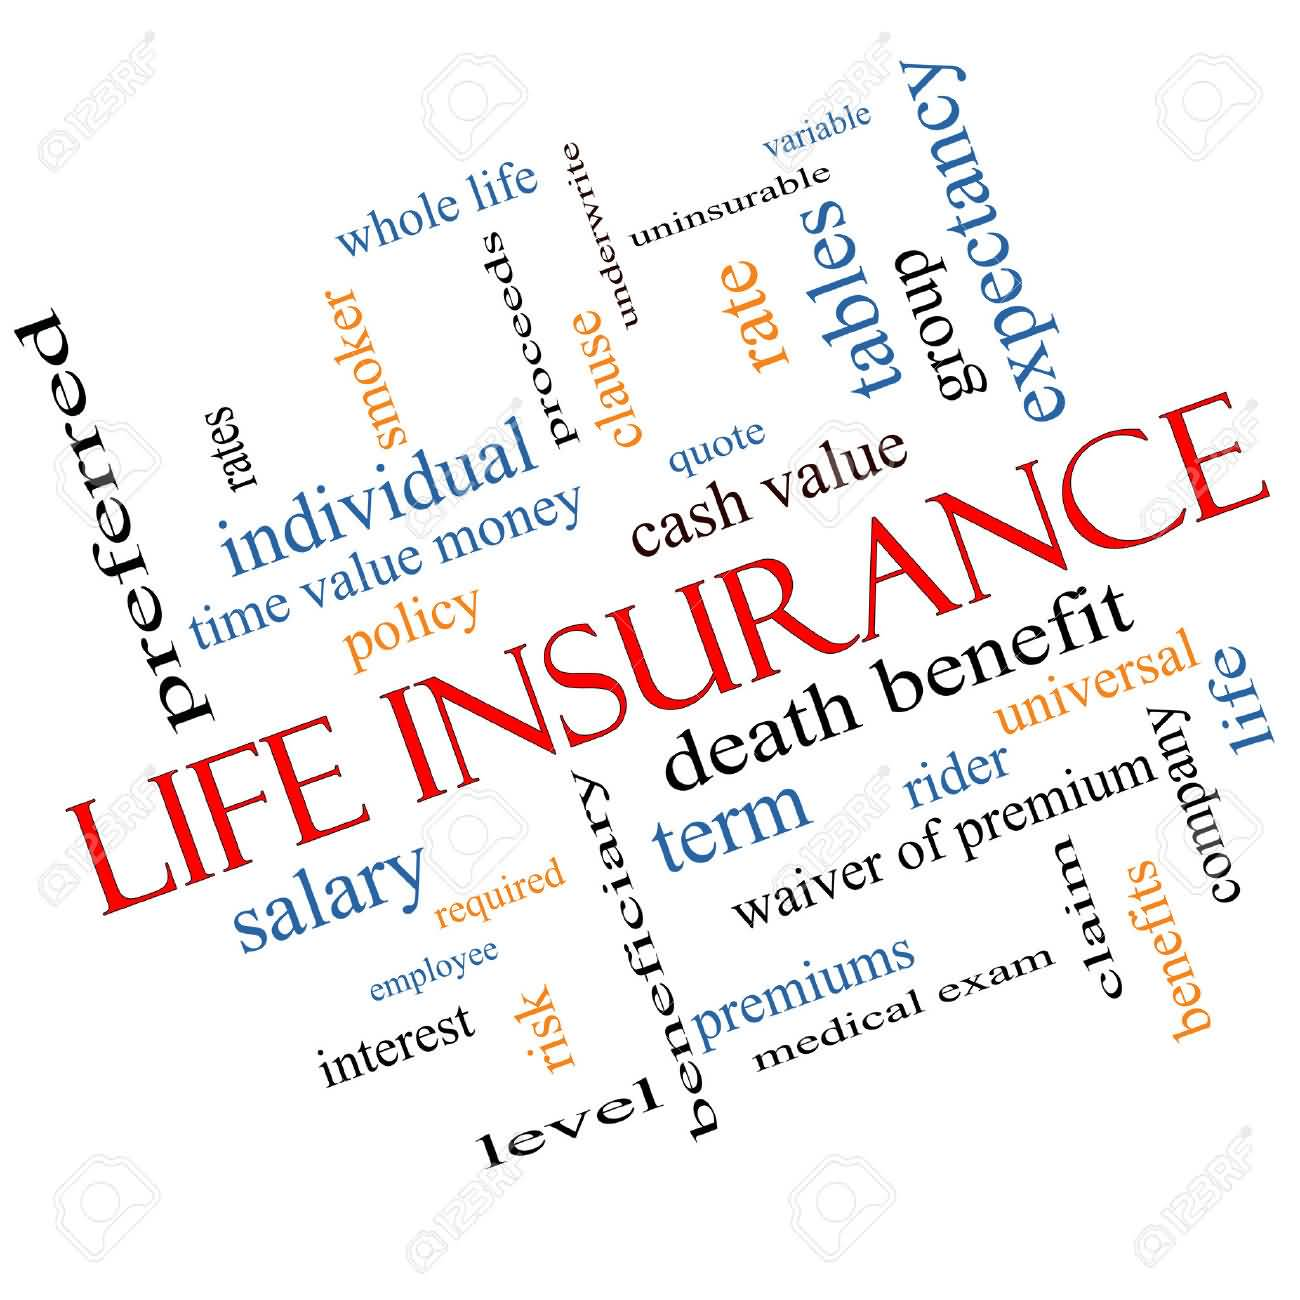 Quote-For-Whole-Life-Insurance-06.jpg